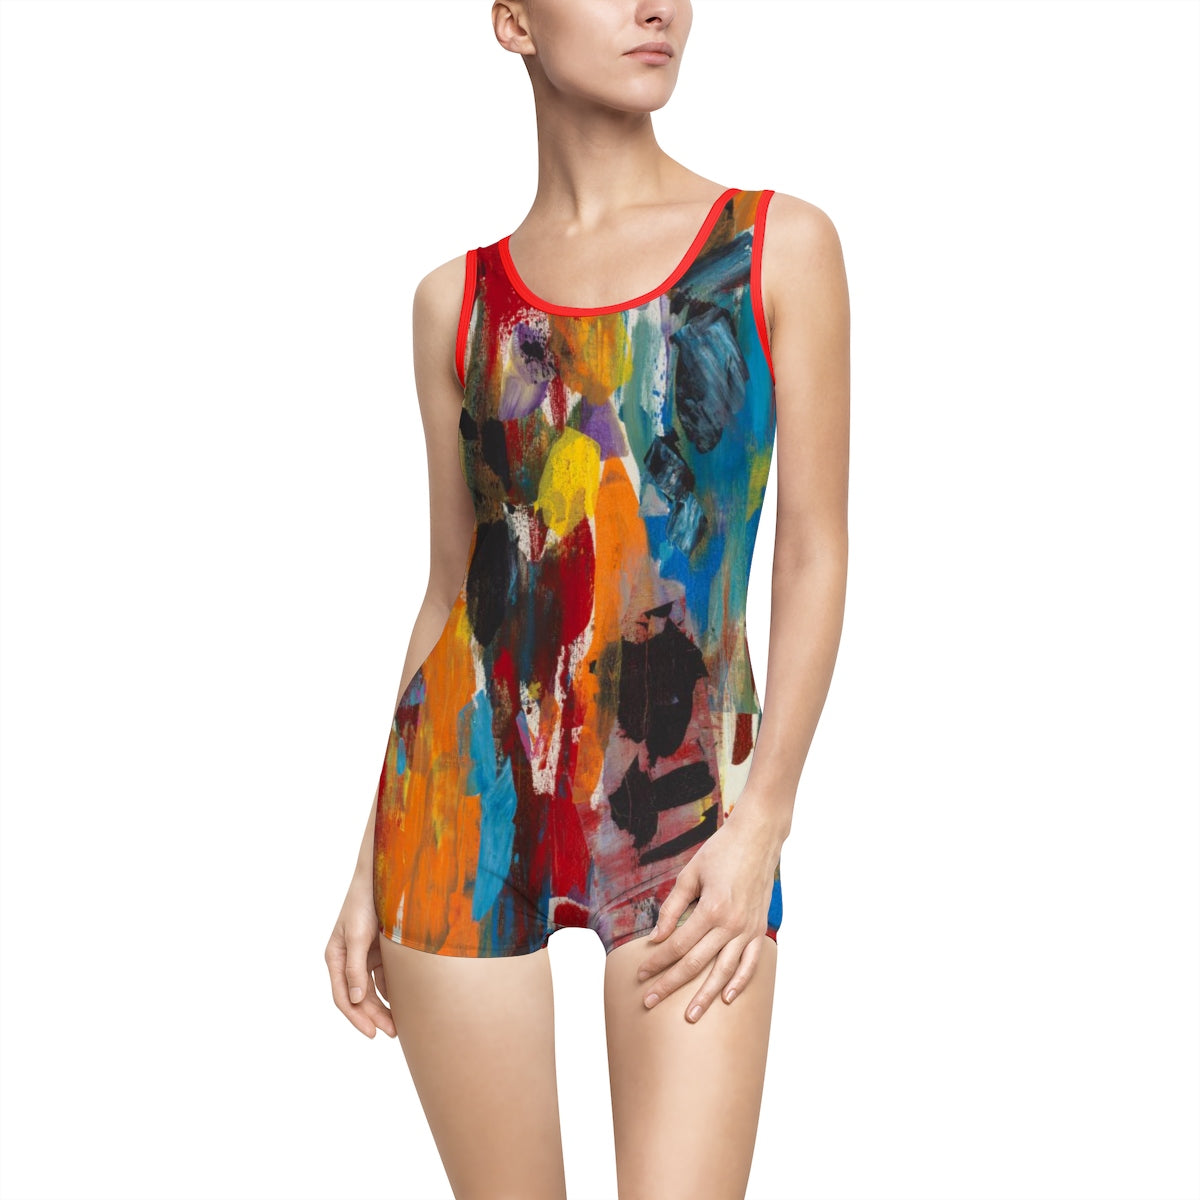 COLOR FUSION  Women's Vintage Swimsuit  SIZES XS - 3 XL